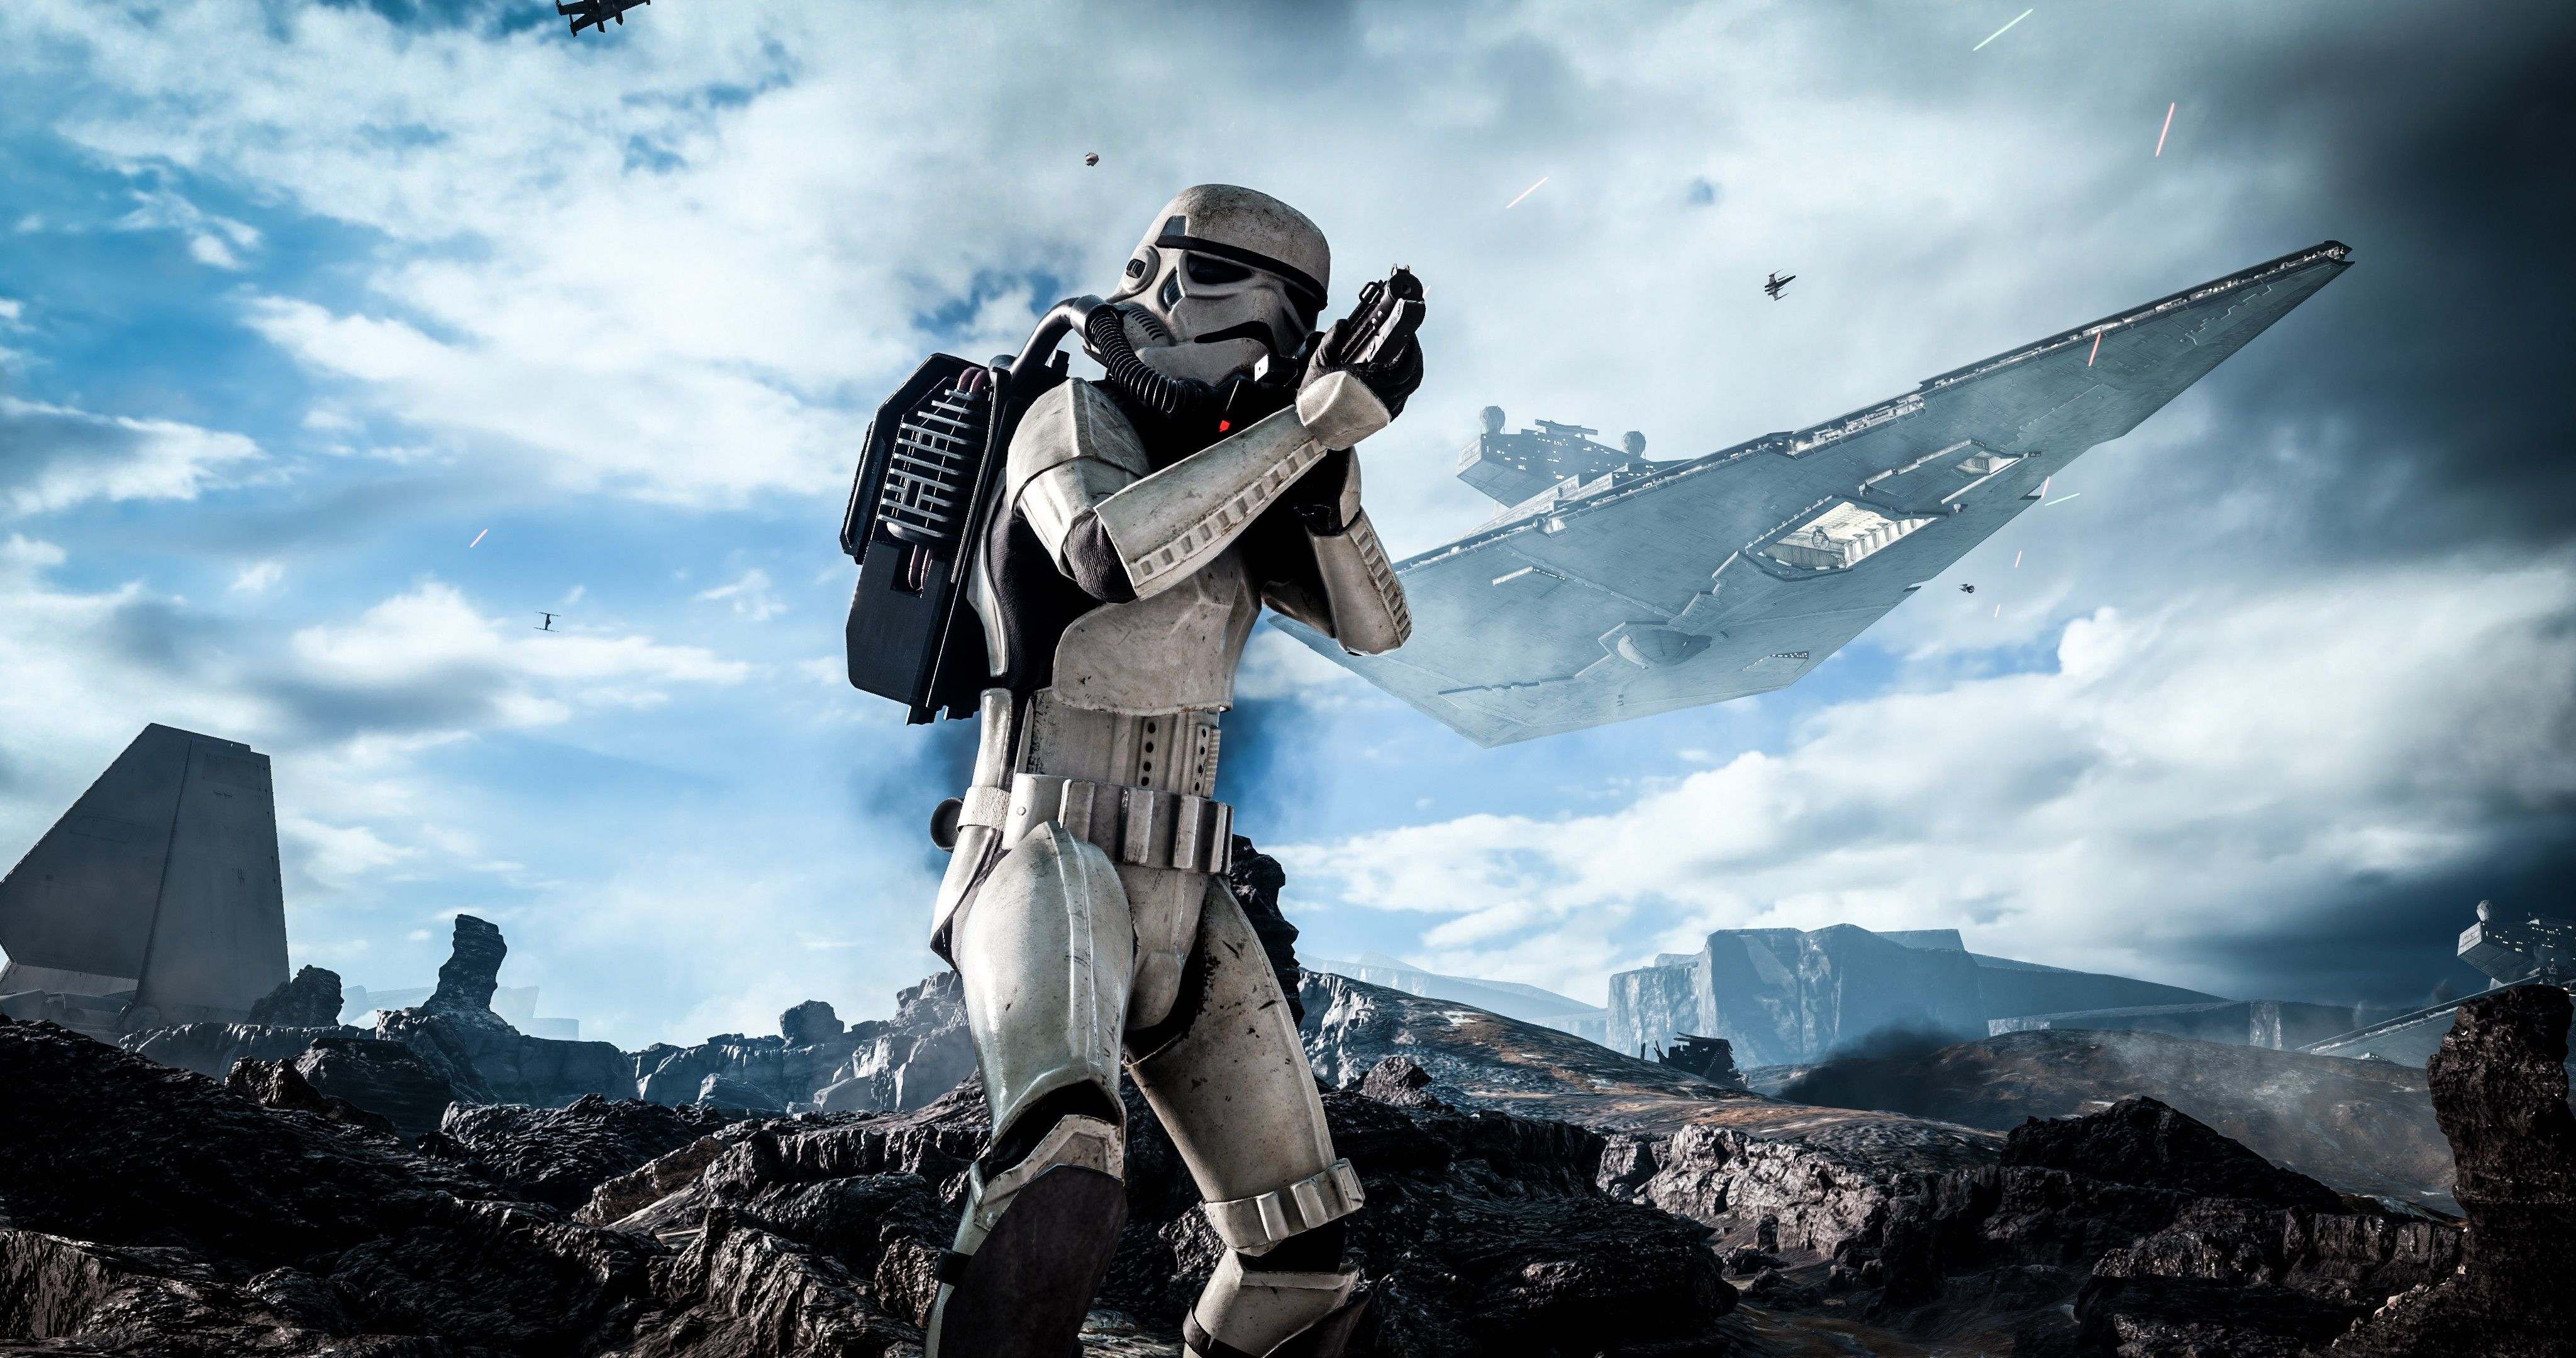 Star Wars Games Wallpapers Top Free Star Wars Games Backgrounds Wallpaperaccess